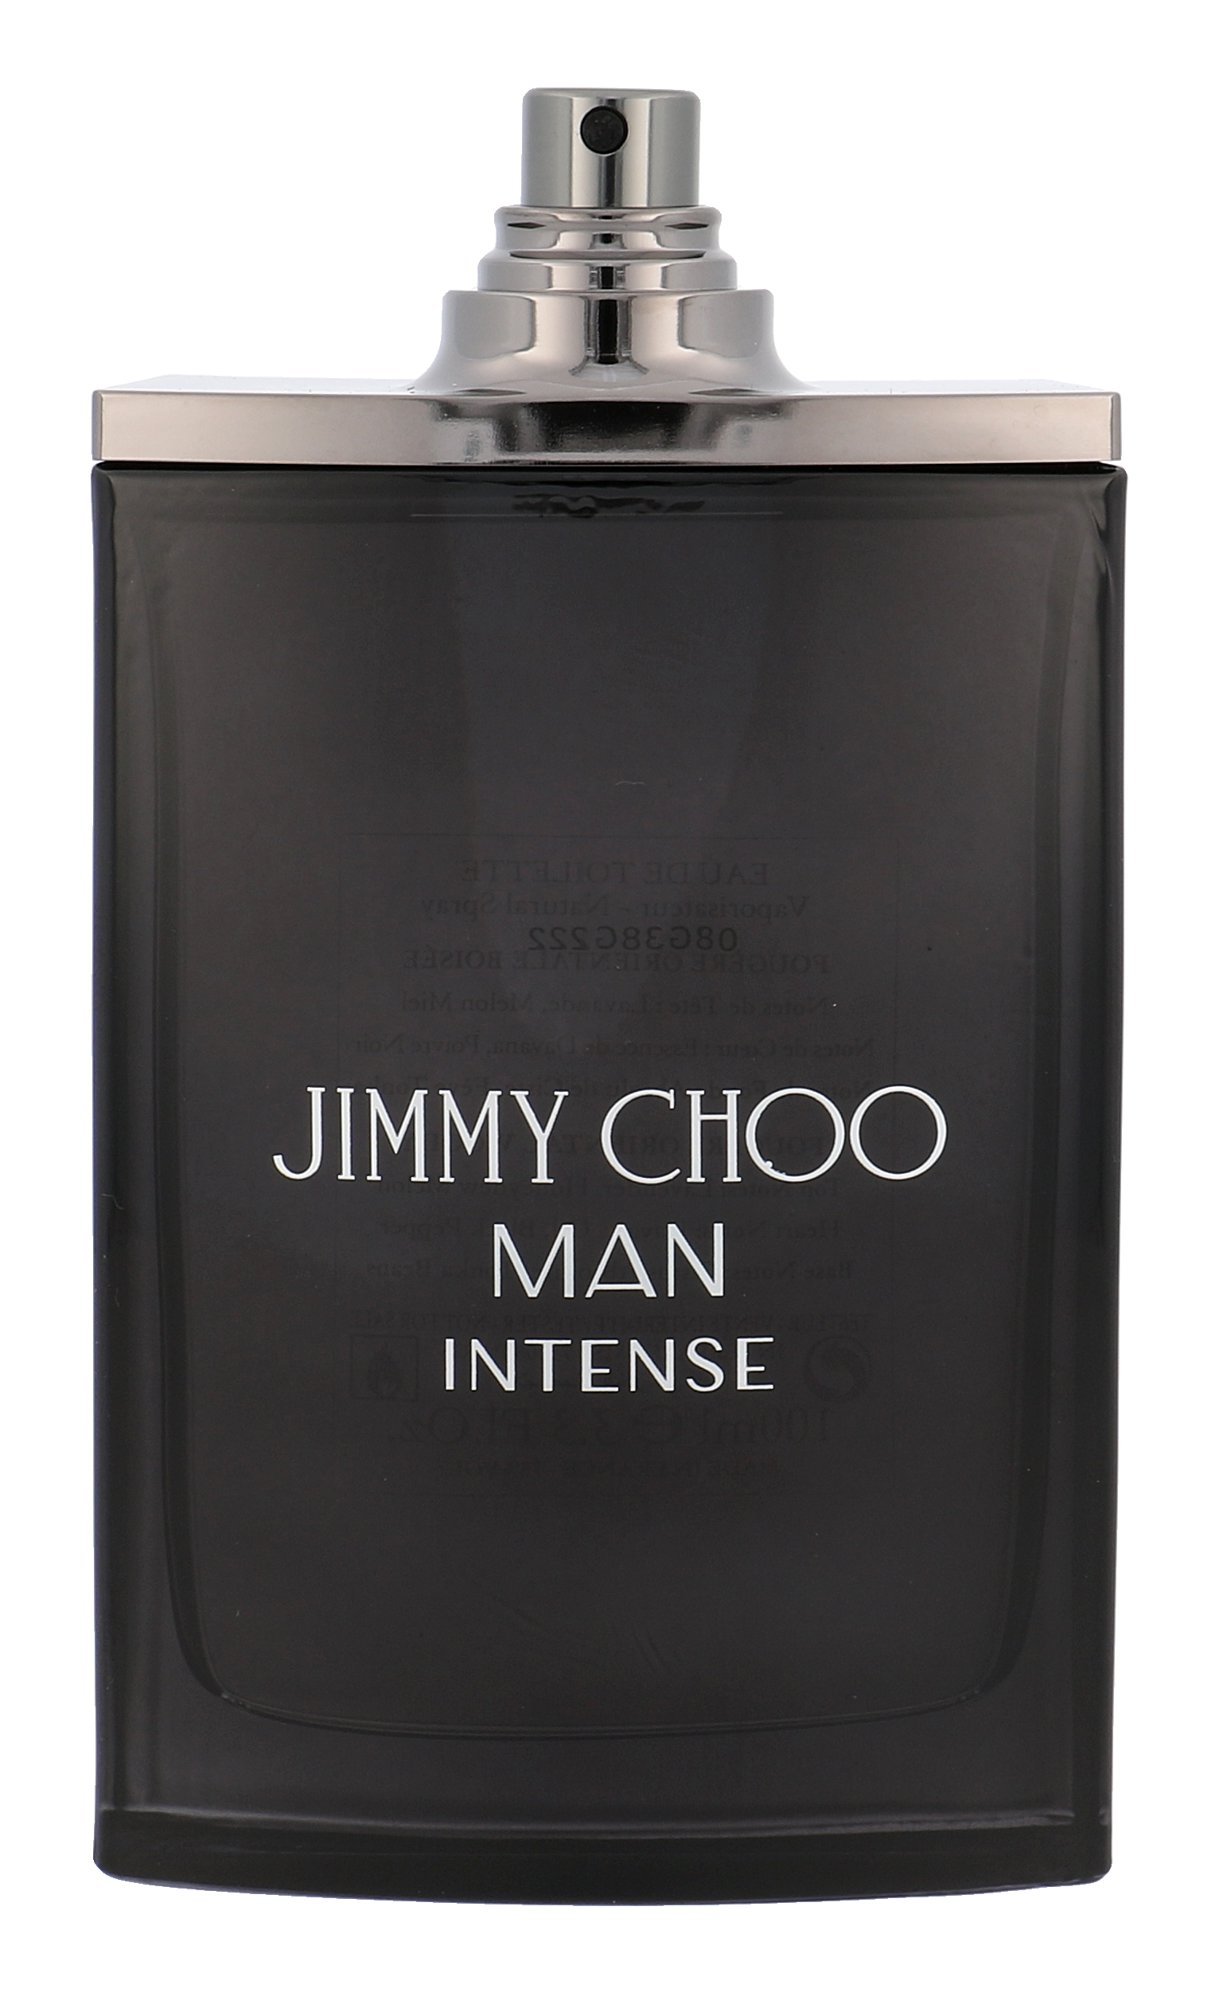 Jimmy Choo Jimmy Choo Man Intense, Toaletná voda 100ml, Tester